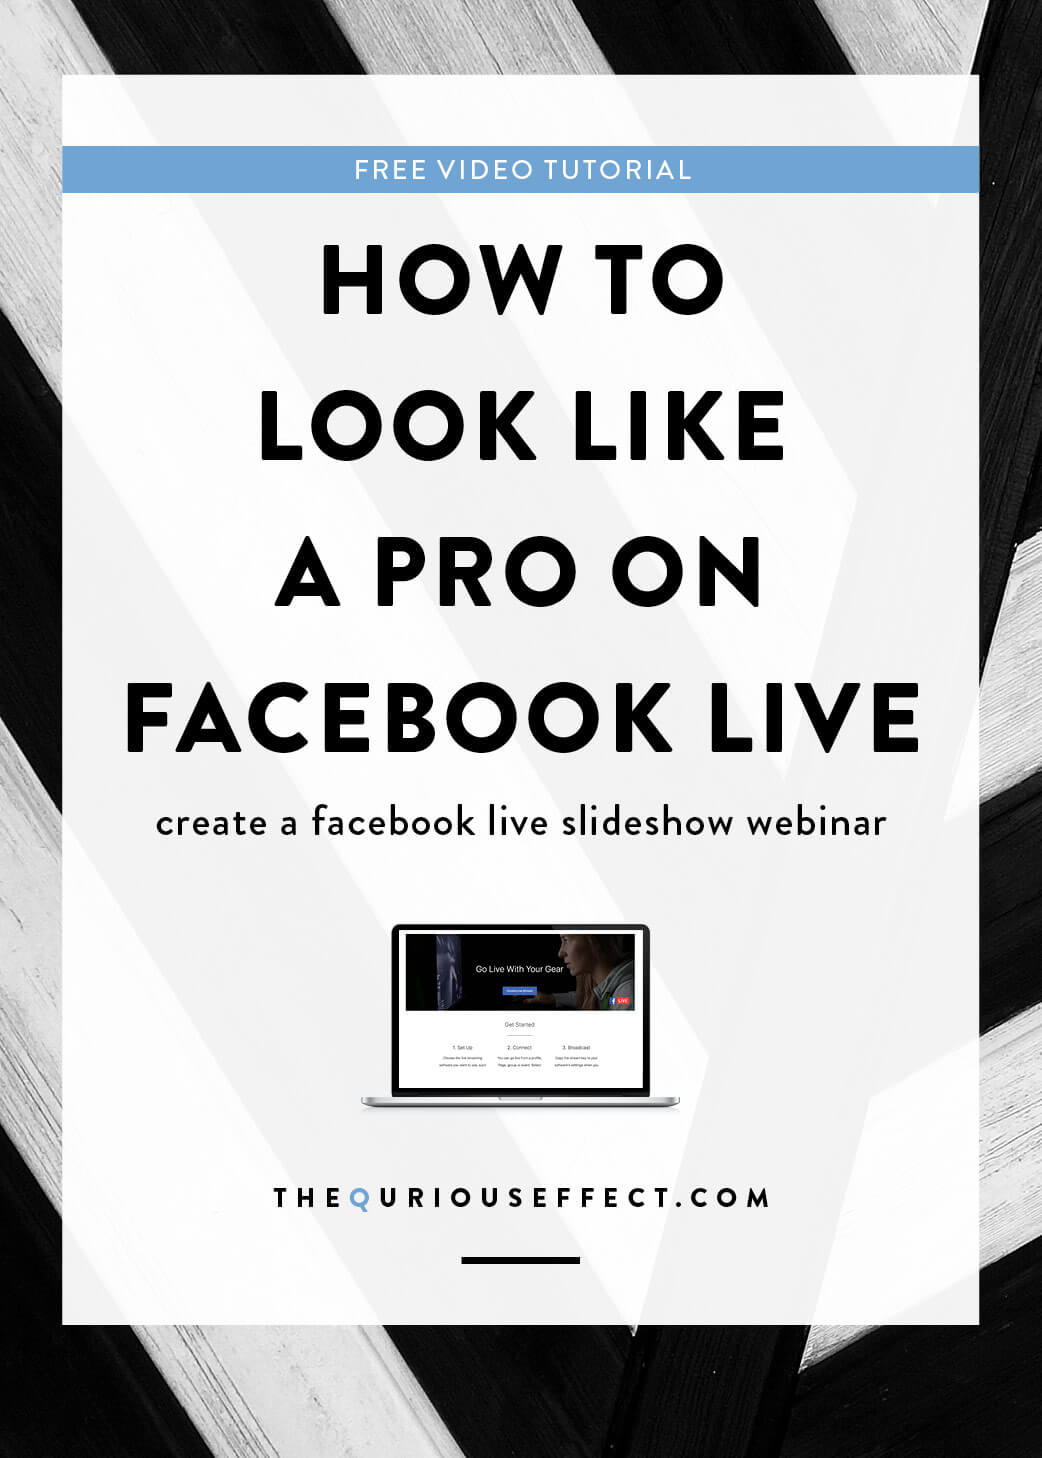 How to Look Like a Pro on Facebook Live, with a free video tutorial. By The Qurious Effect, a brand and squarespace web designer.